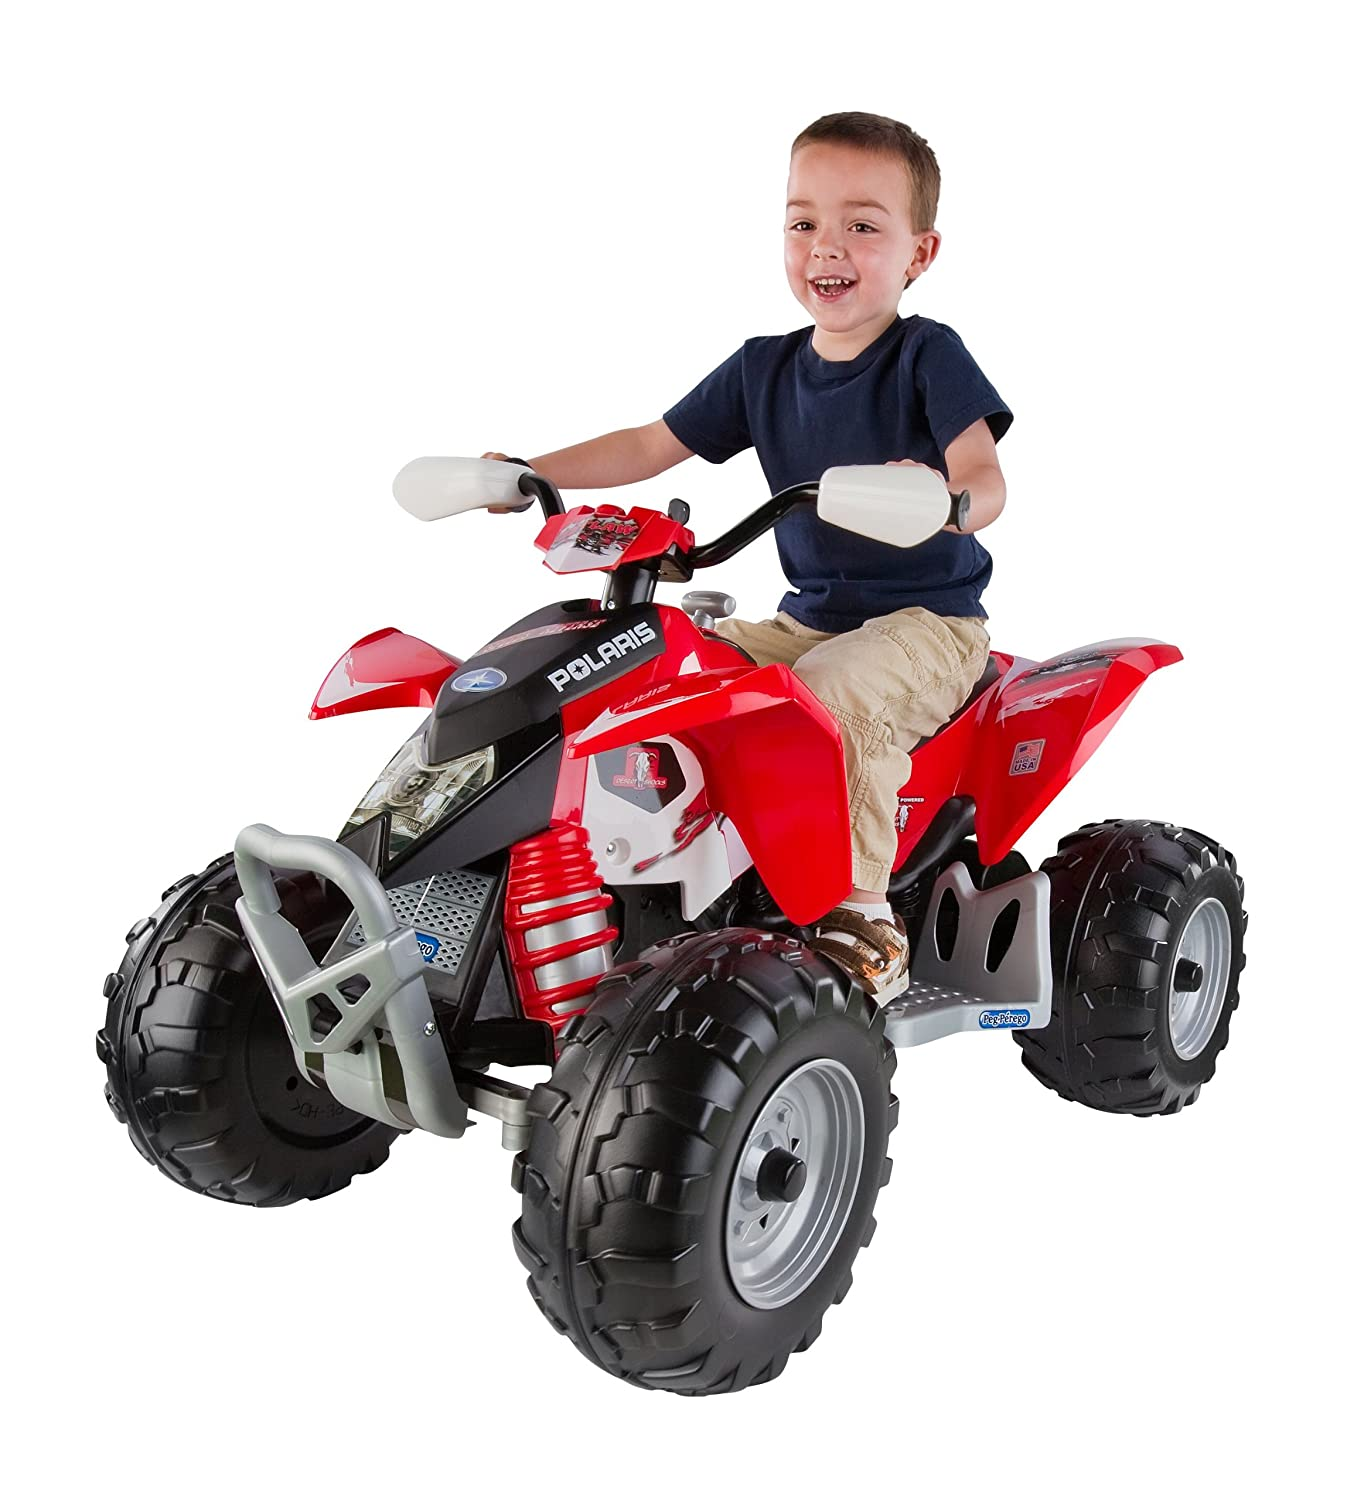 Amazon Peg Perego Polaris Outlaw Red Toys & Games